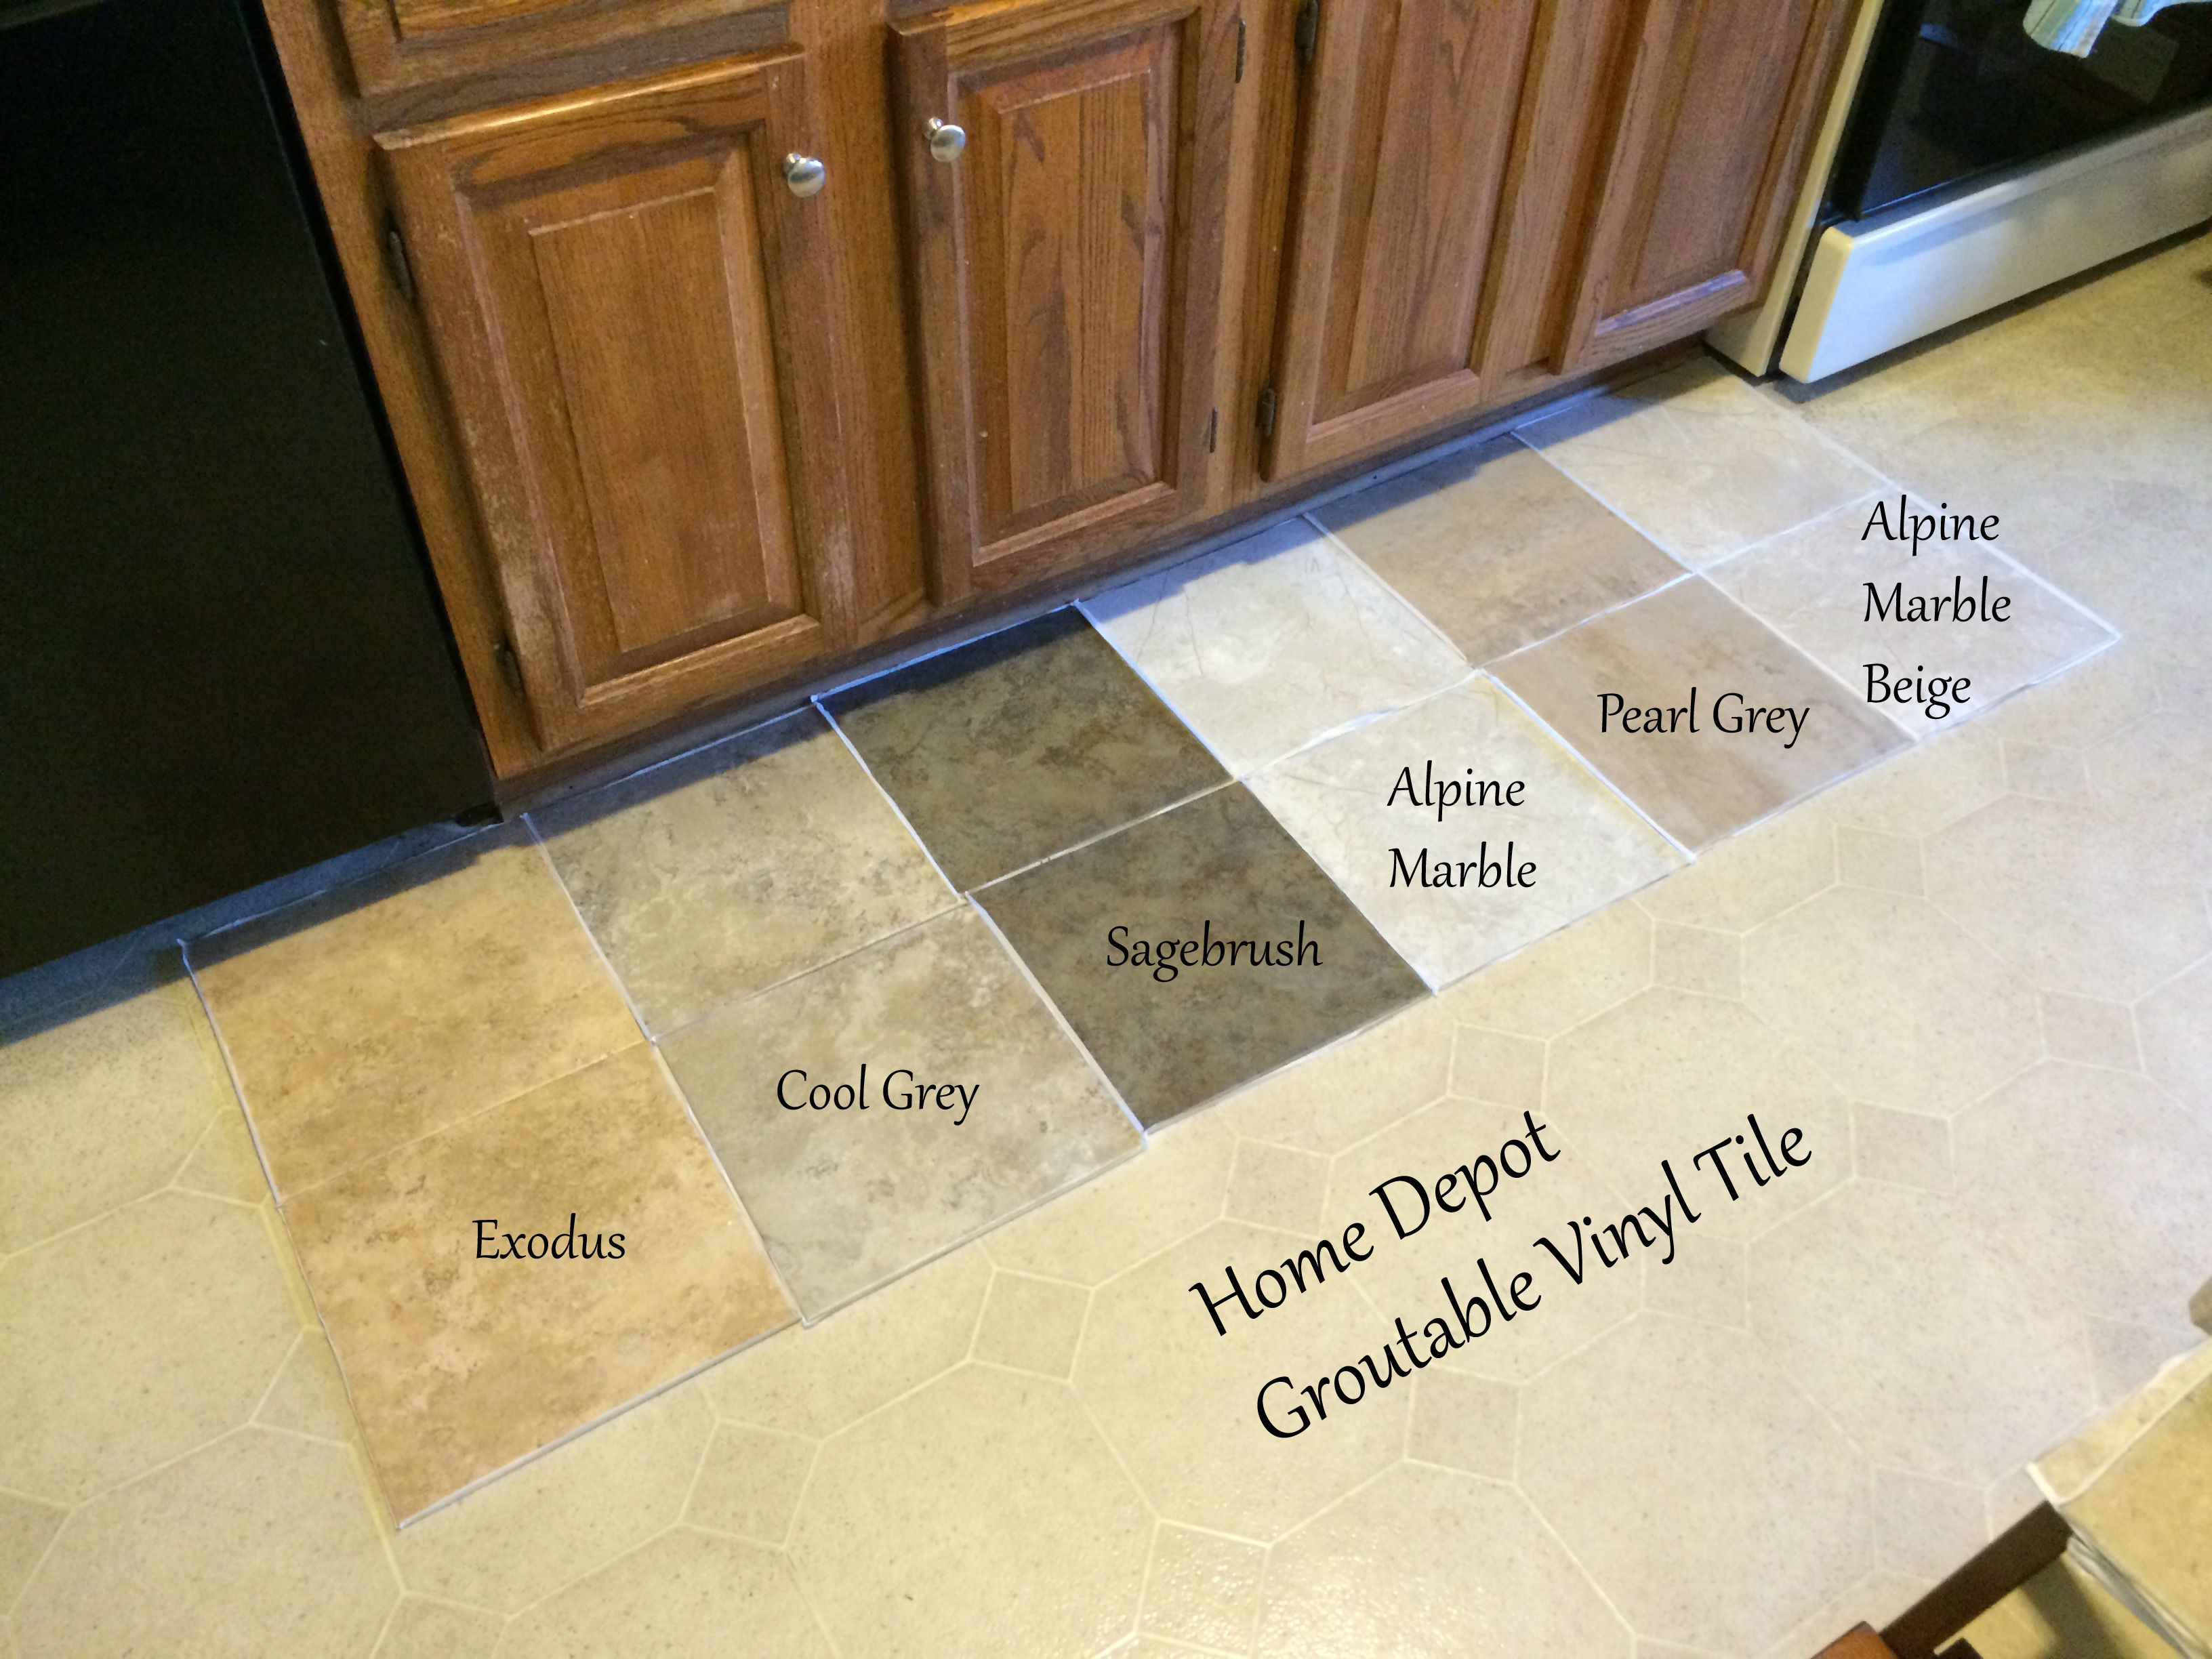 hardwood floor furniture protectors home depot of looking for kitchen flooring ideas found groutable vinyl tile at intended for looking for kitchen flooring ideas found groutable vinyl tile at home depot they only had two color selections so i ordered a bunch more online